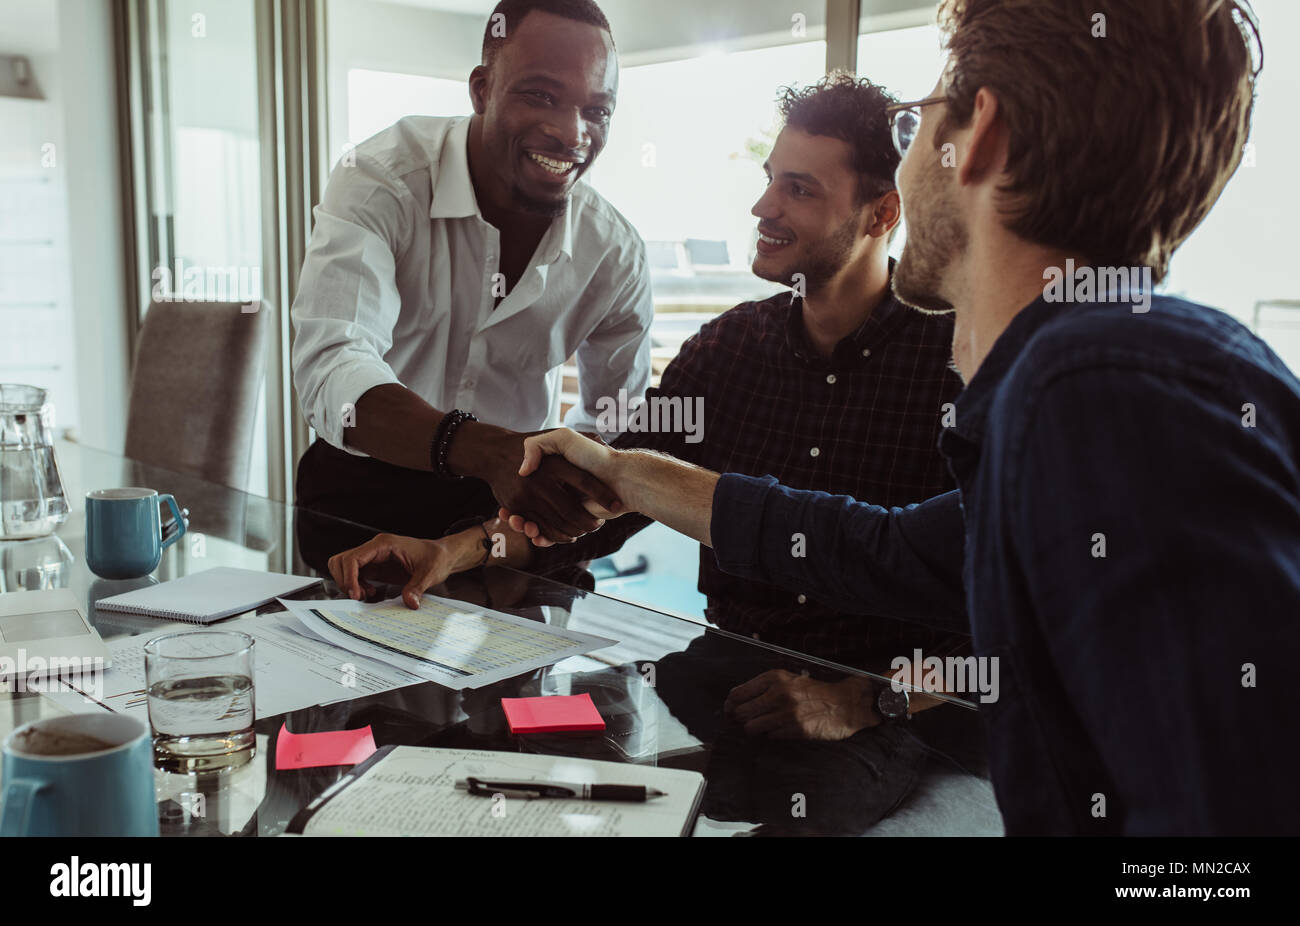 Businessmen discussing work sitting at conference table in office. Men shaking hands and smiling during a business meeting. - Stock Image